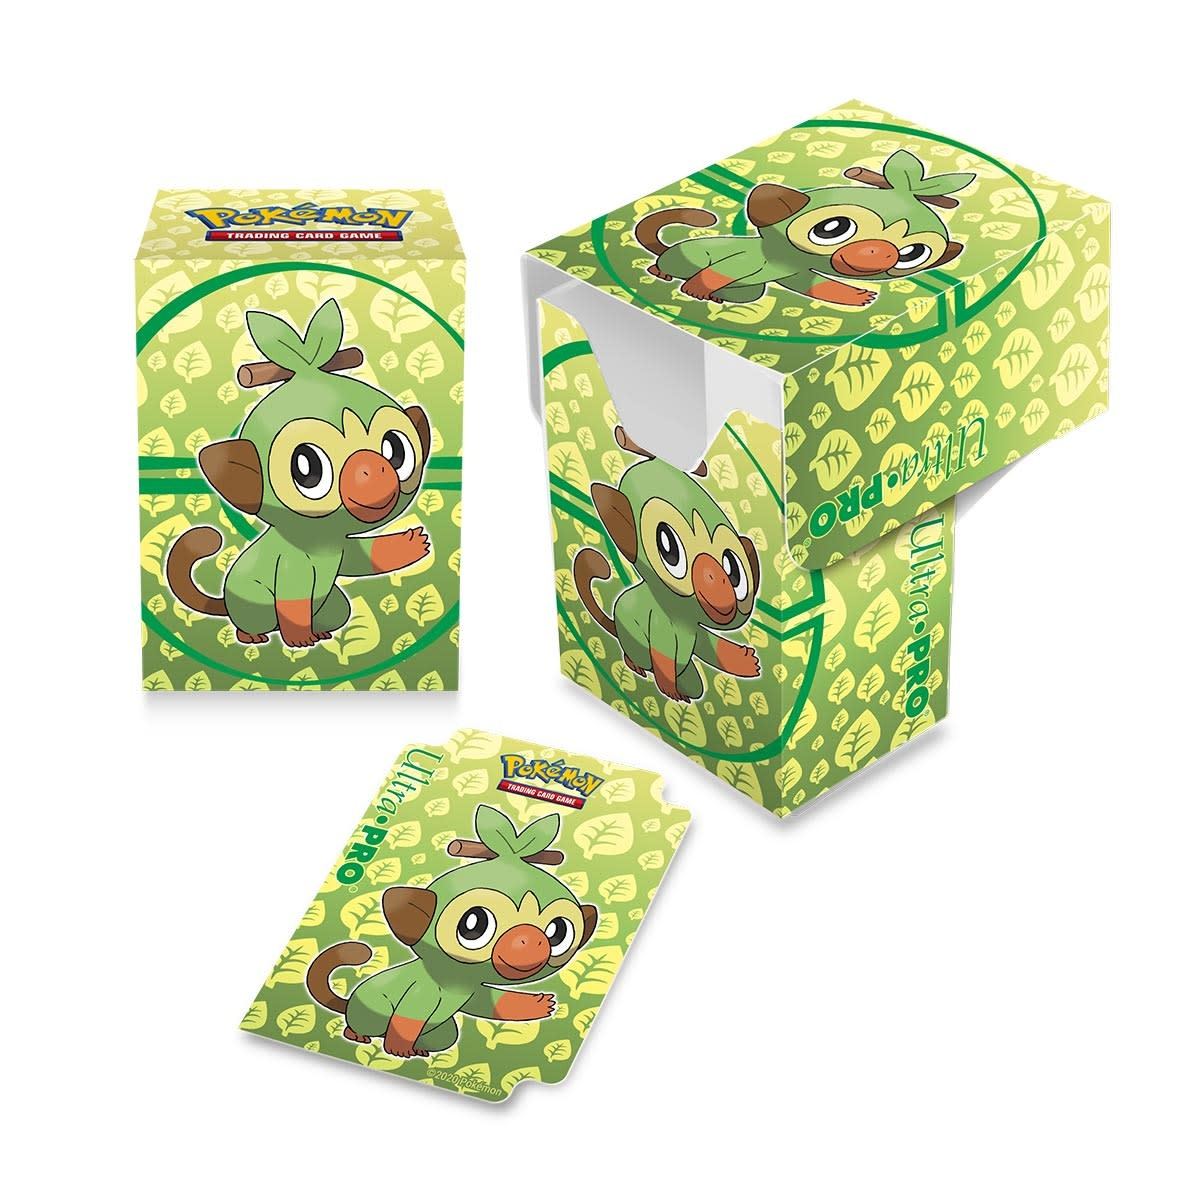 UP D-Box Pokemon Grookey Full View